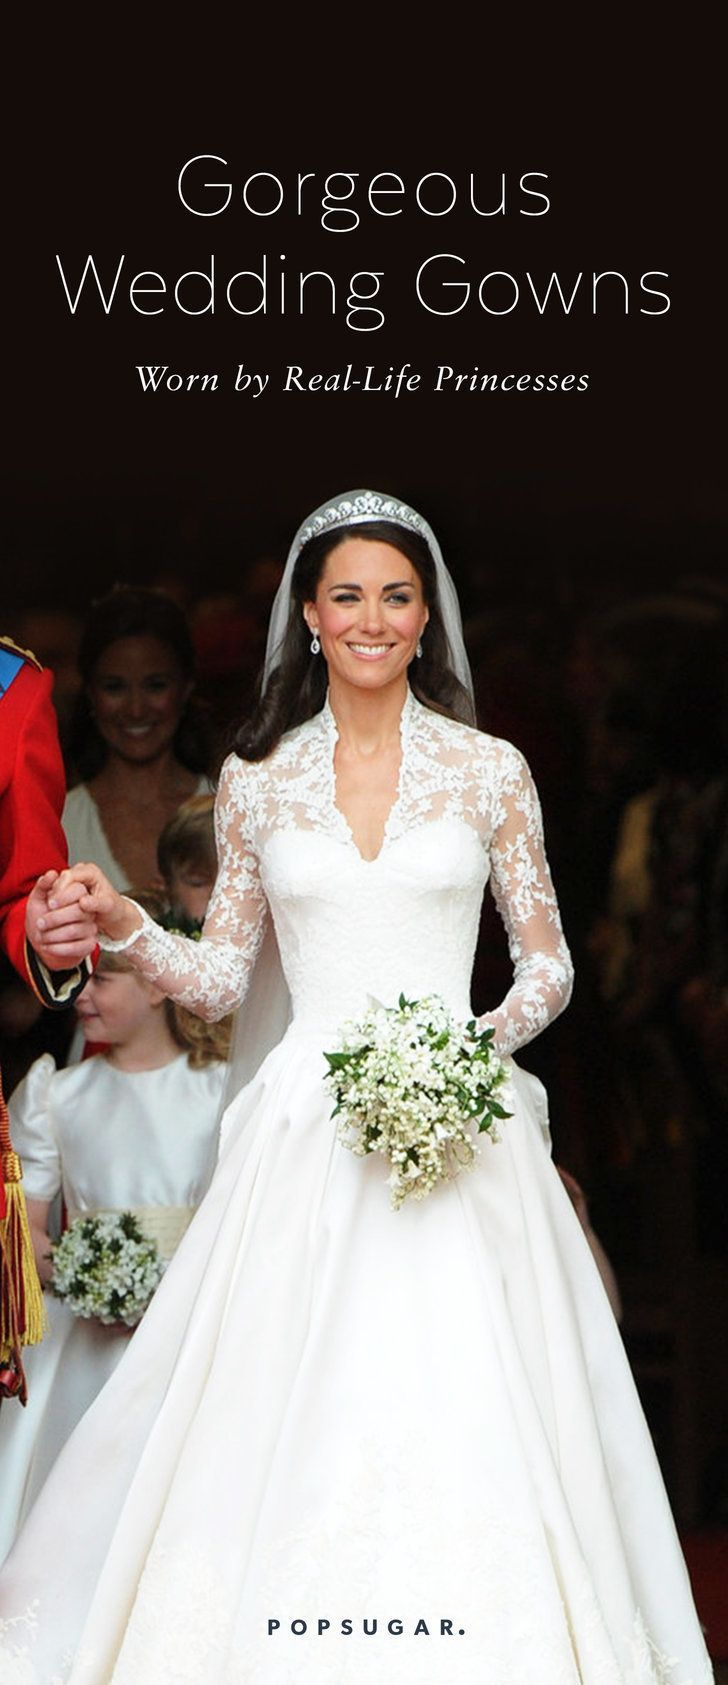 6798e3c2a30 21 Breathtaking Wedding Gowns Worn by Real-Life Princesses